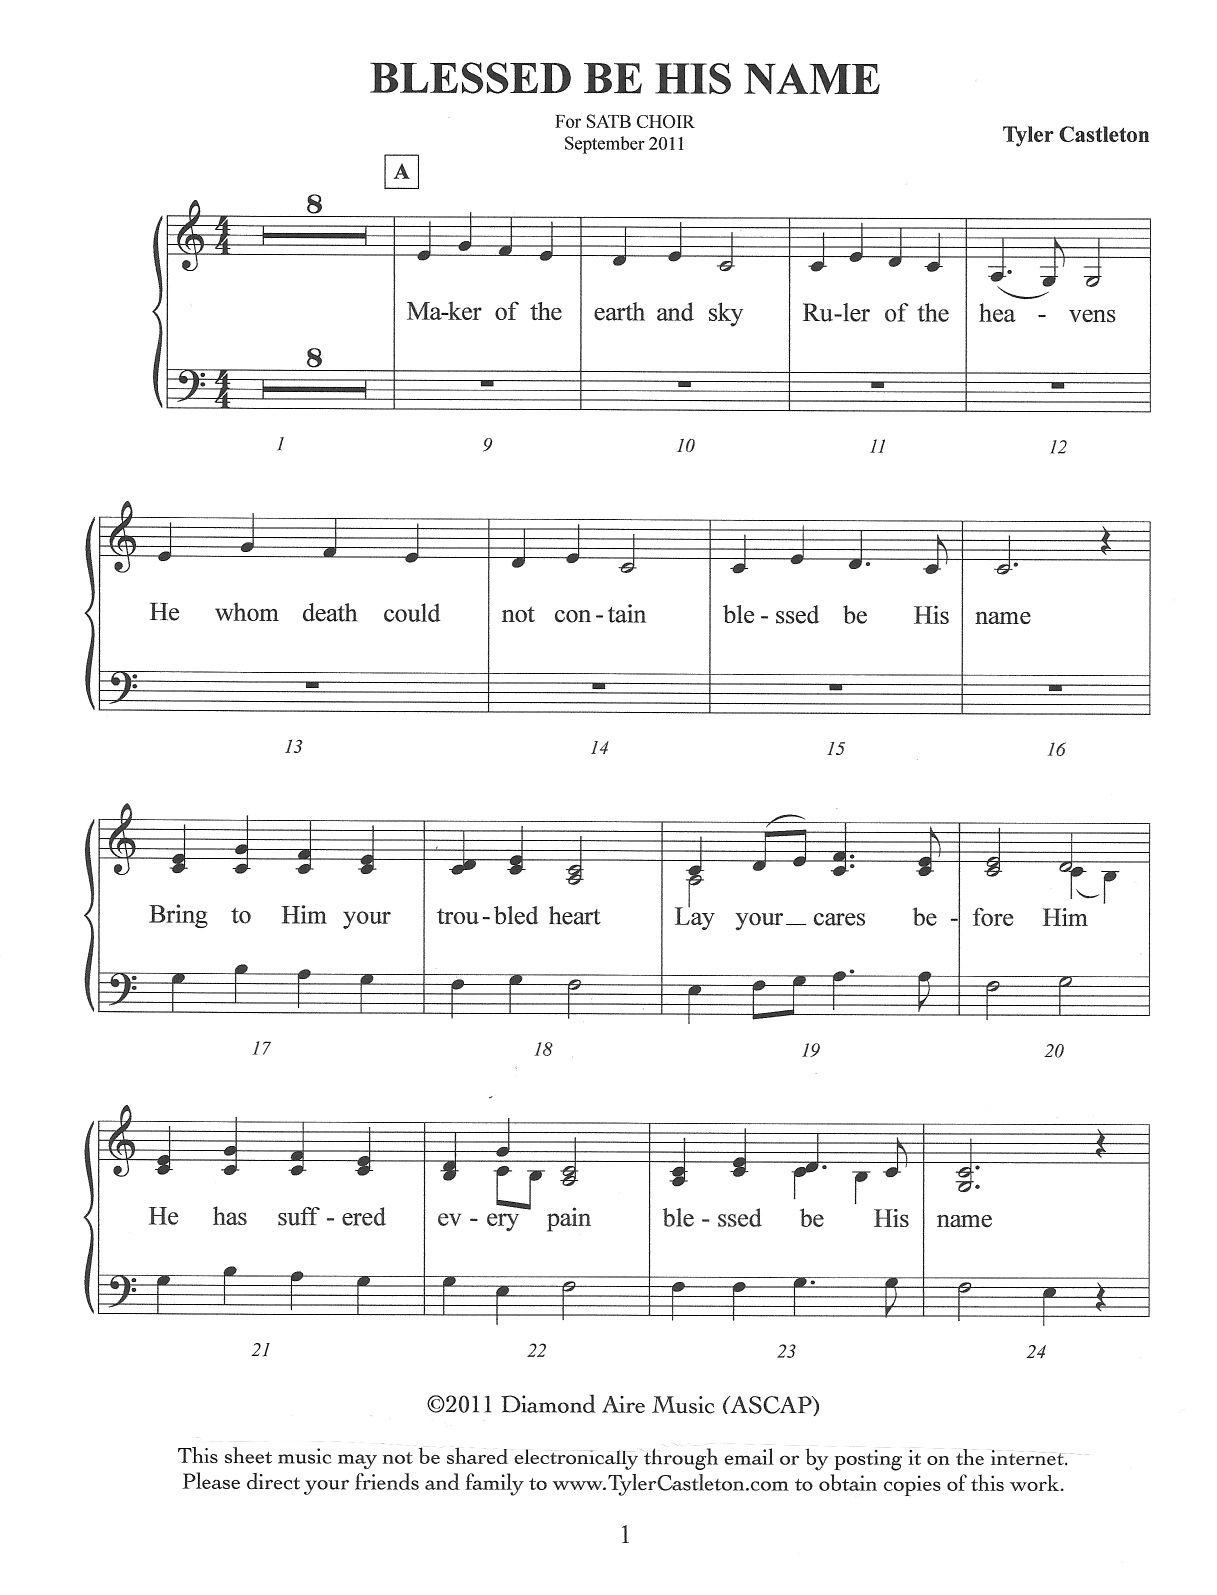 Tyler castleton sheet music blessed be his name choir version hexwebz Images